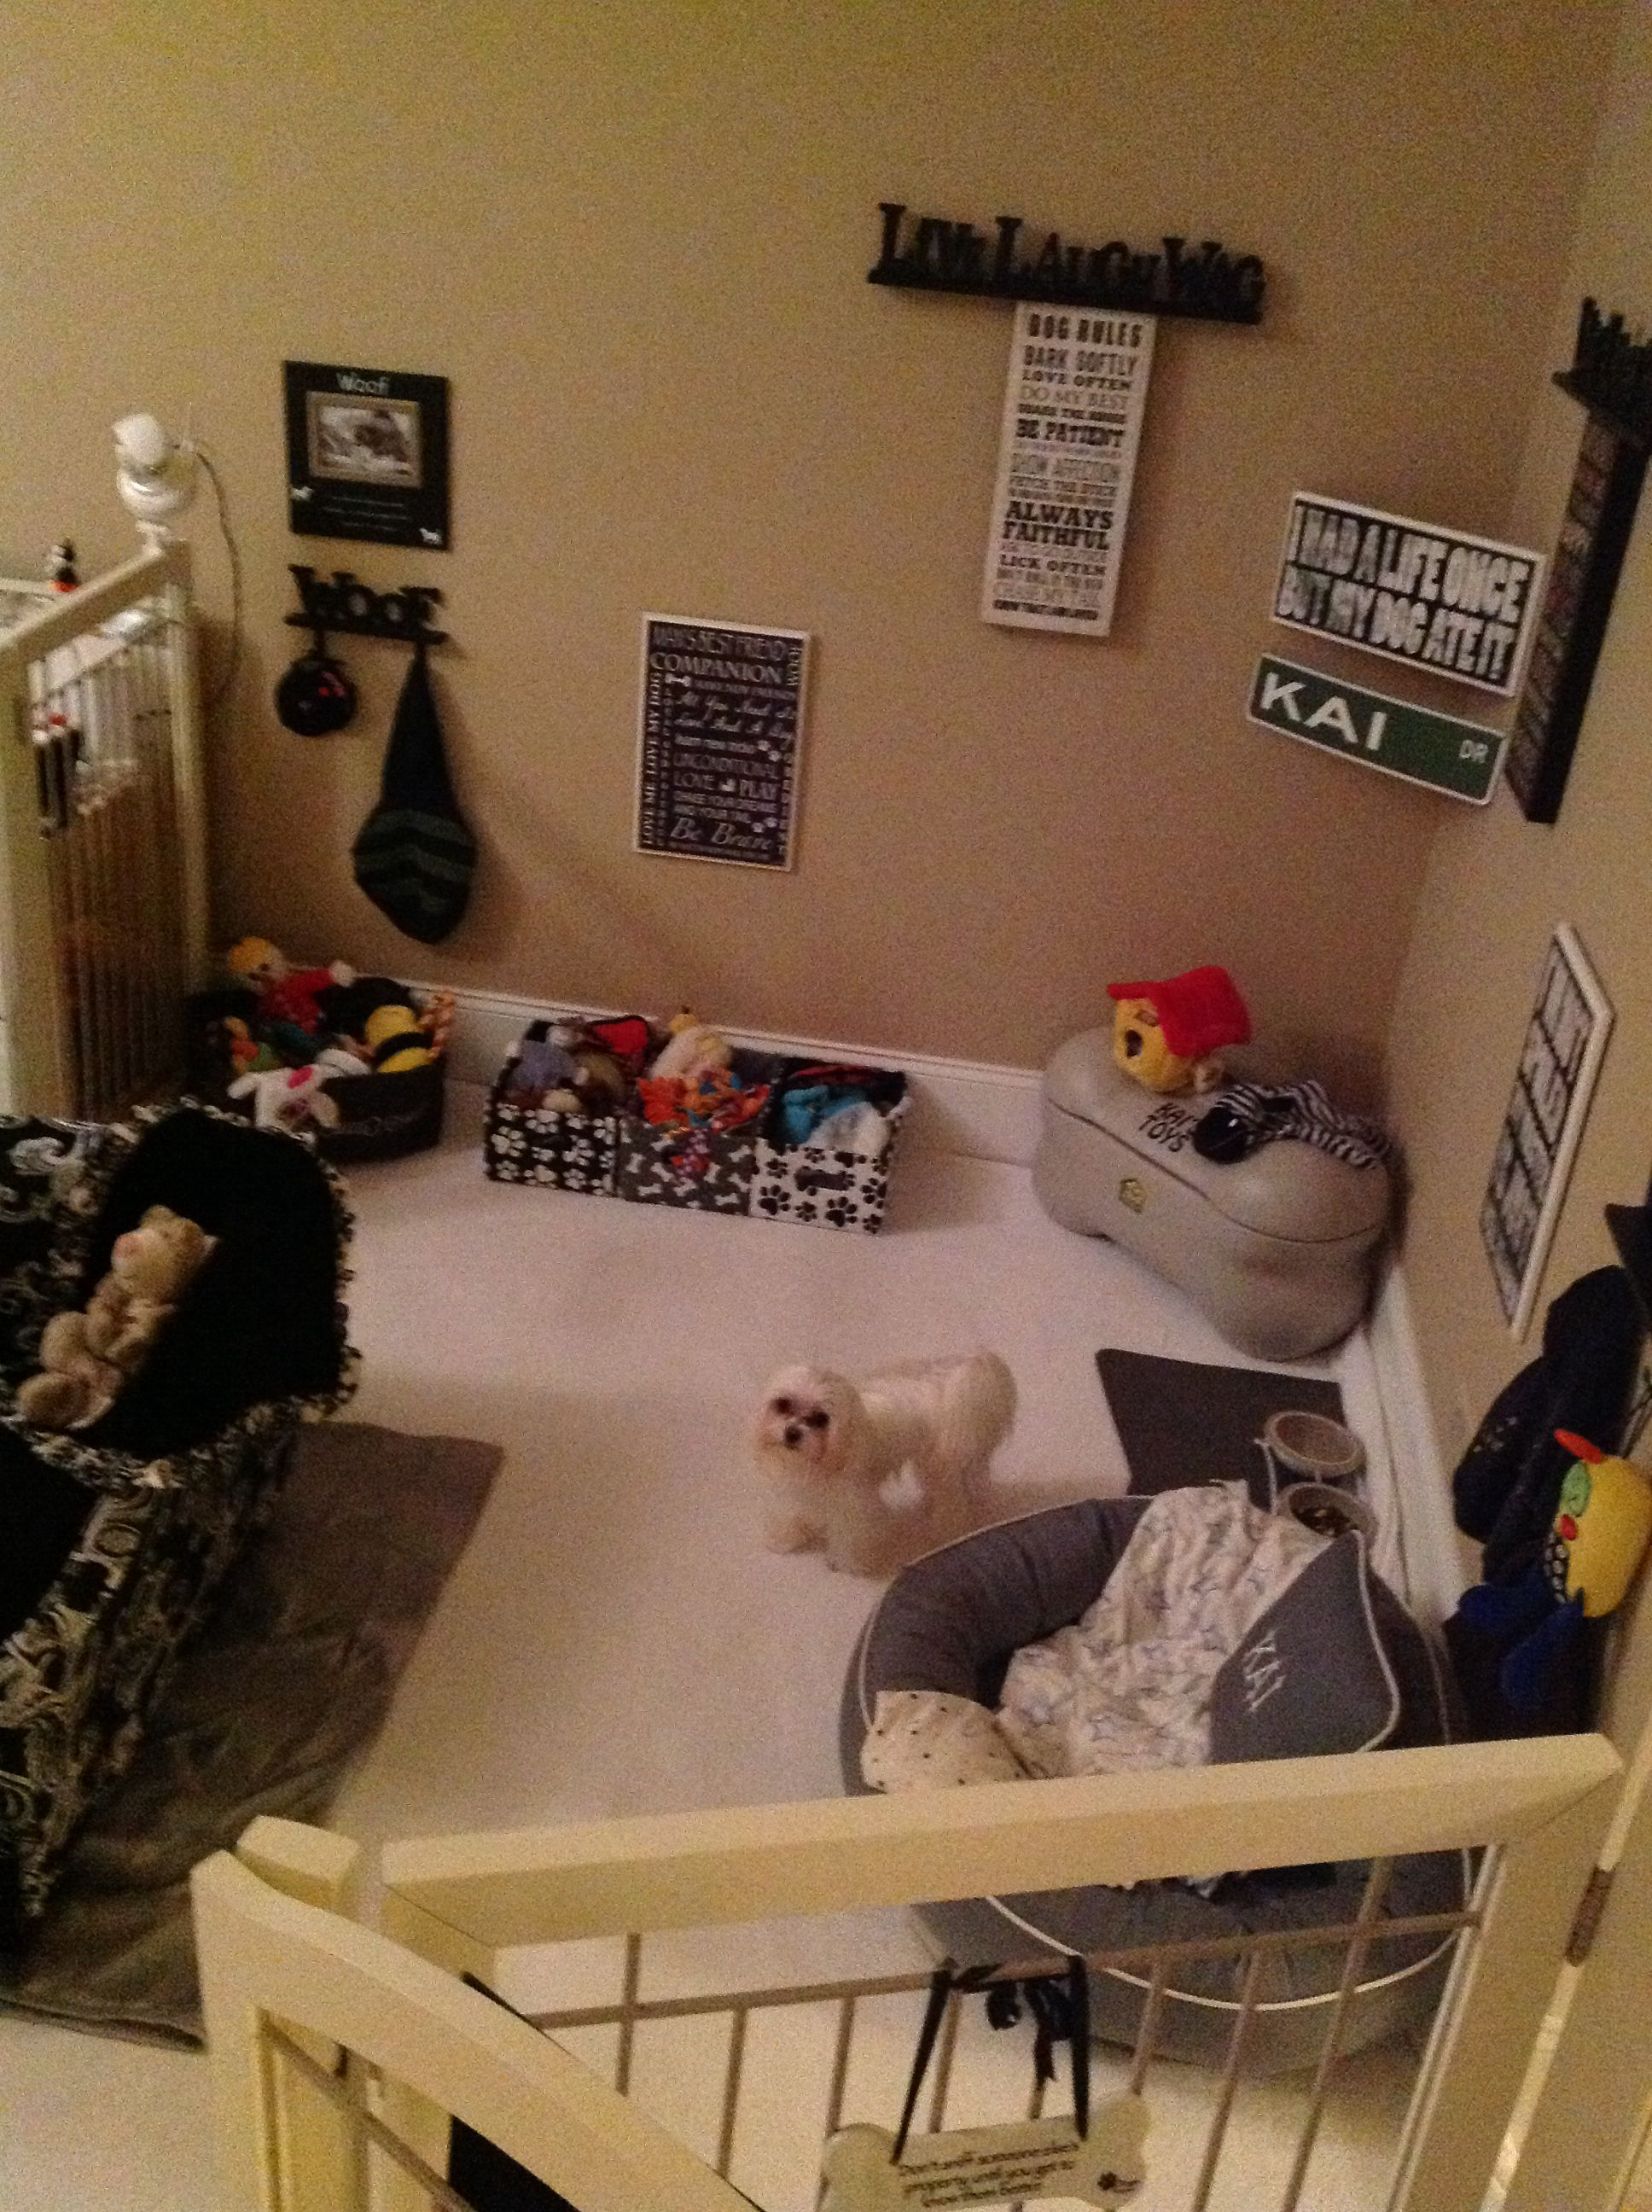 Kai's Dog Room. And I thought my dogs were spoiled